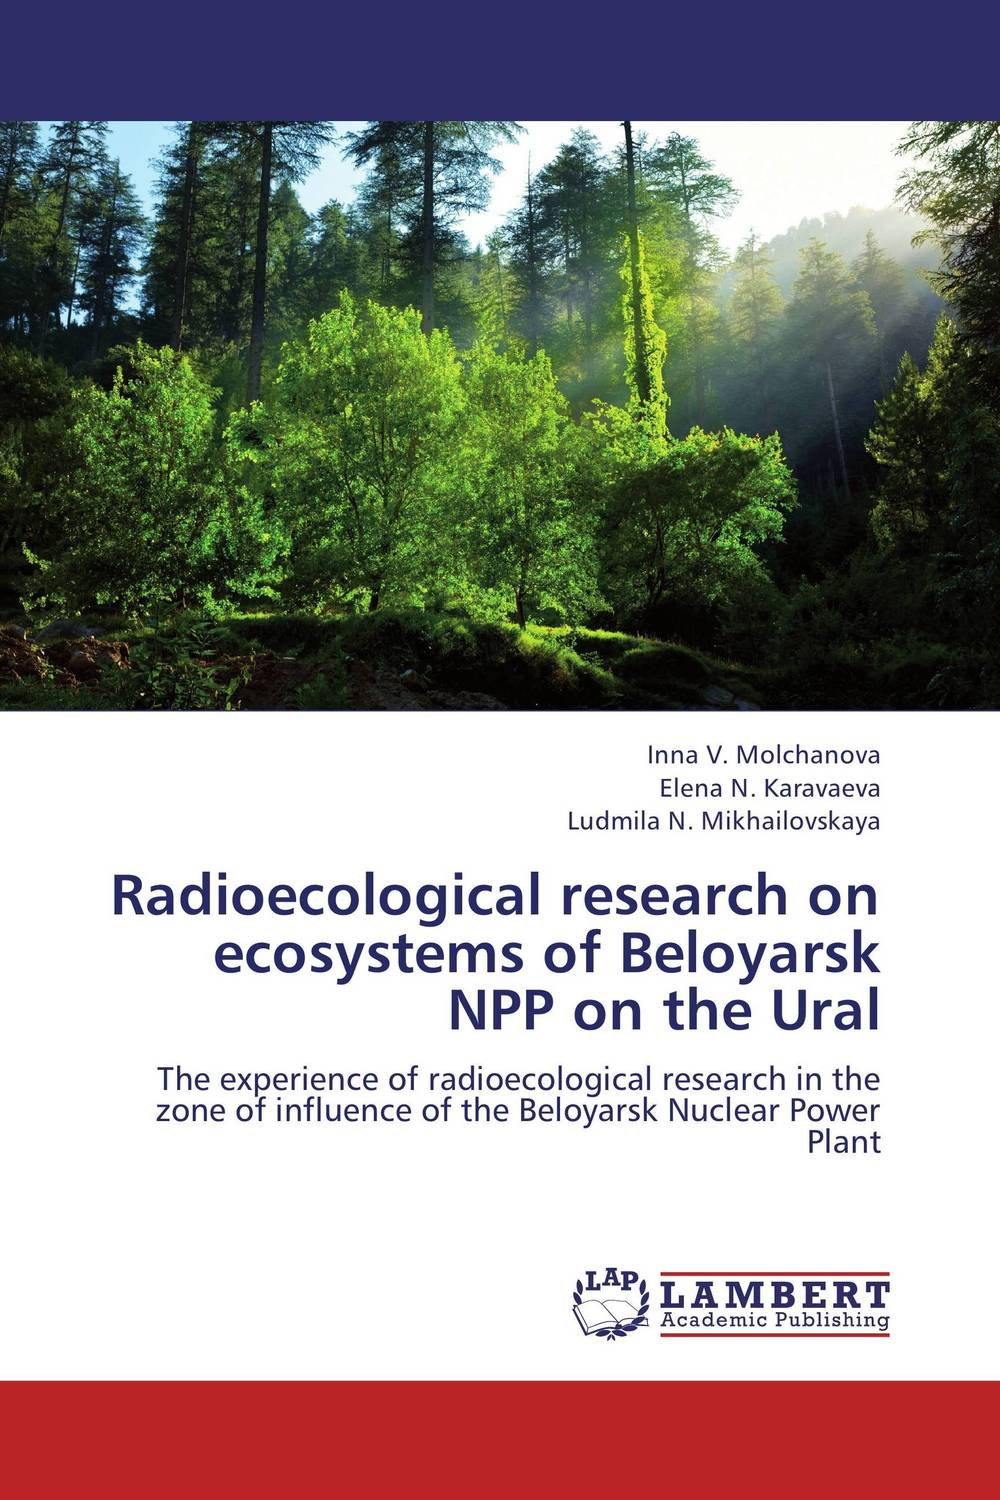 Radioecological research on ecosystems of Beloyarsk NPP on the Ural